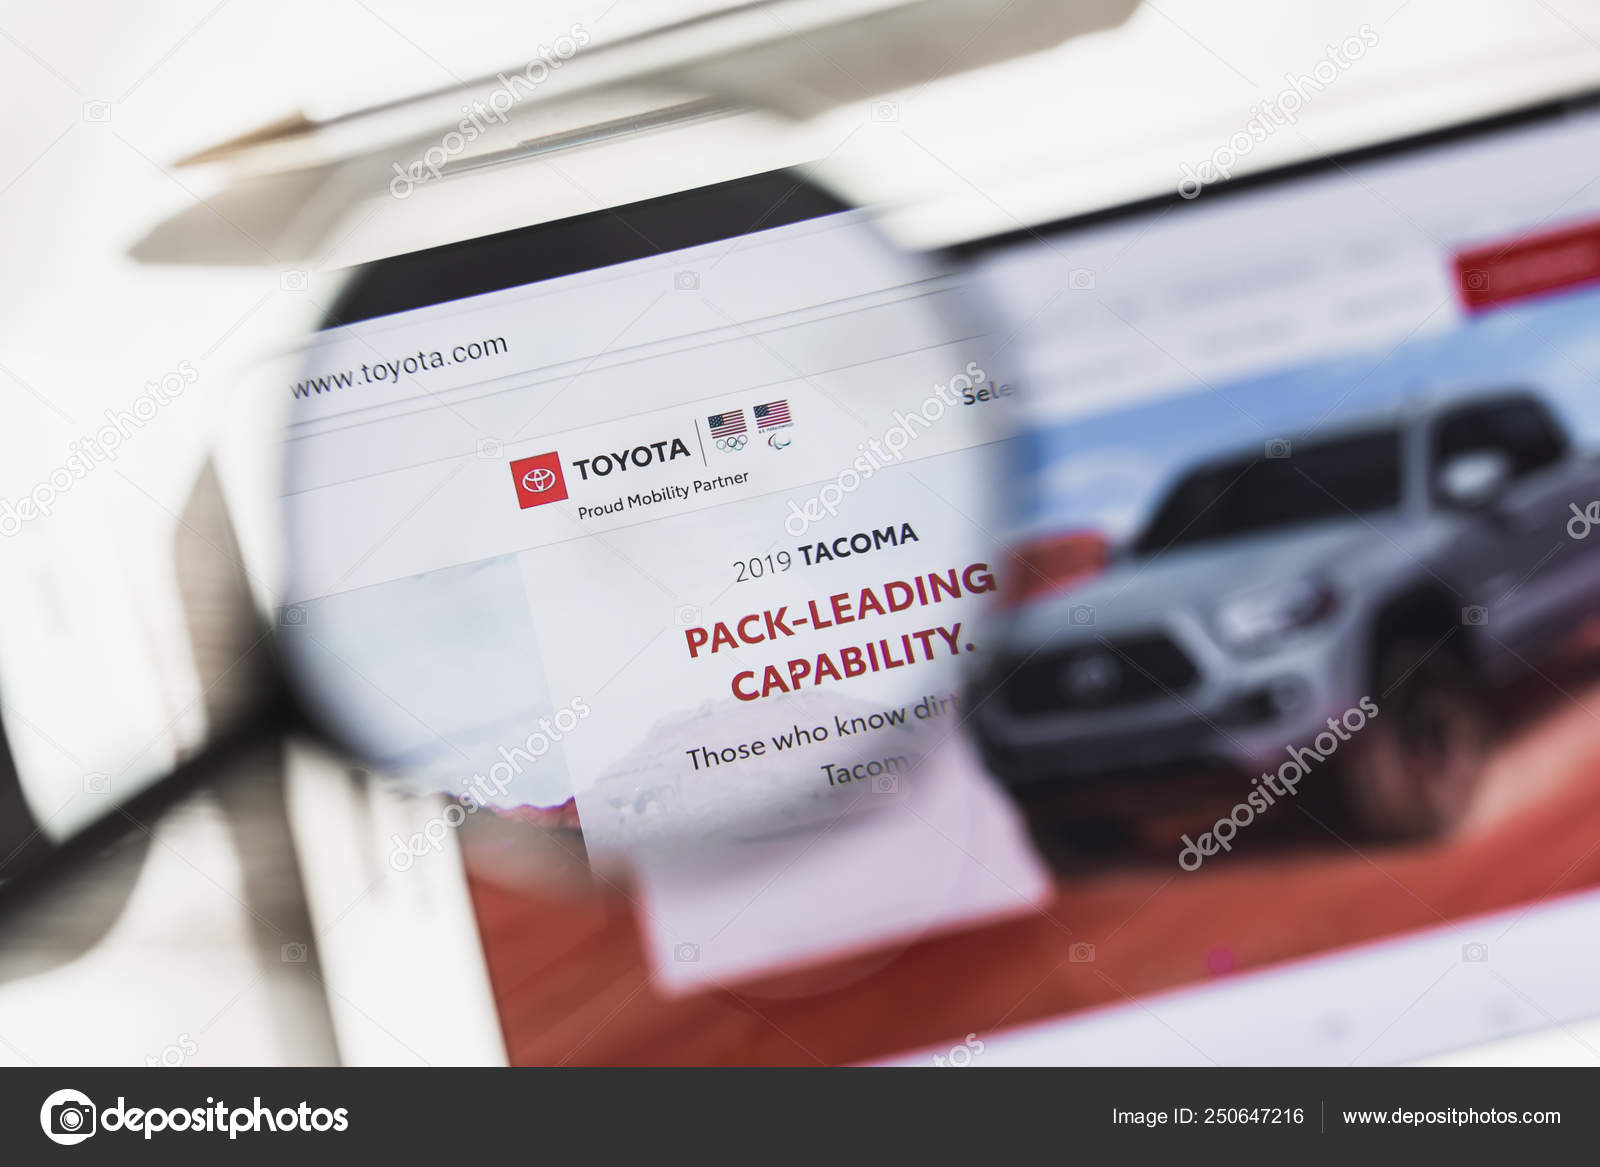 Toyota Official Site >> Toyota Aichi Japan 14 March 2019 Toyota Motor